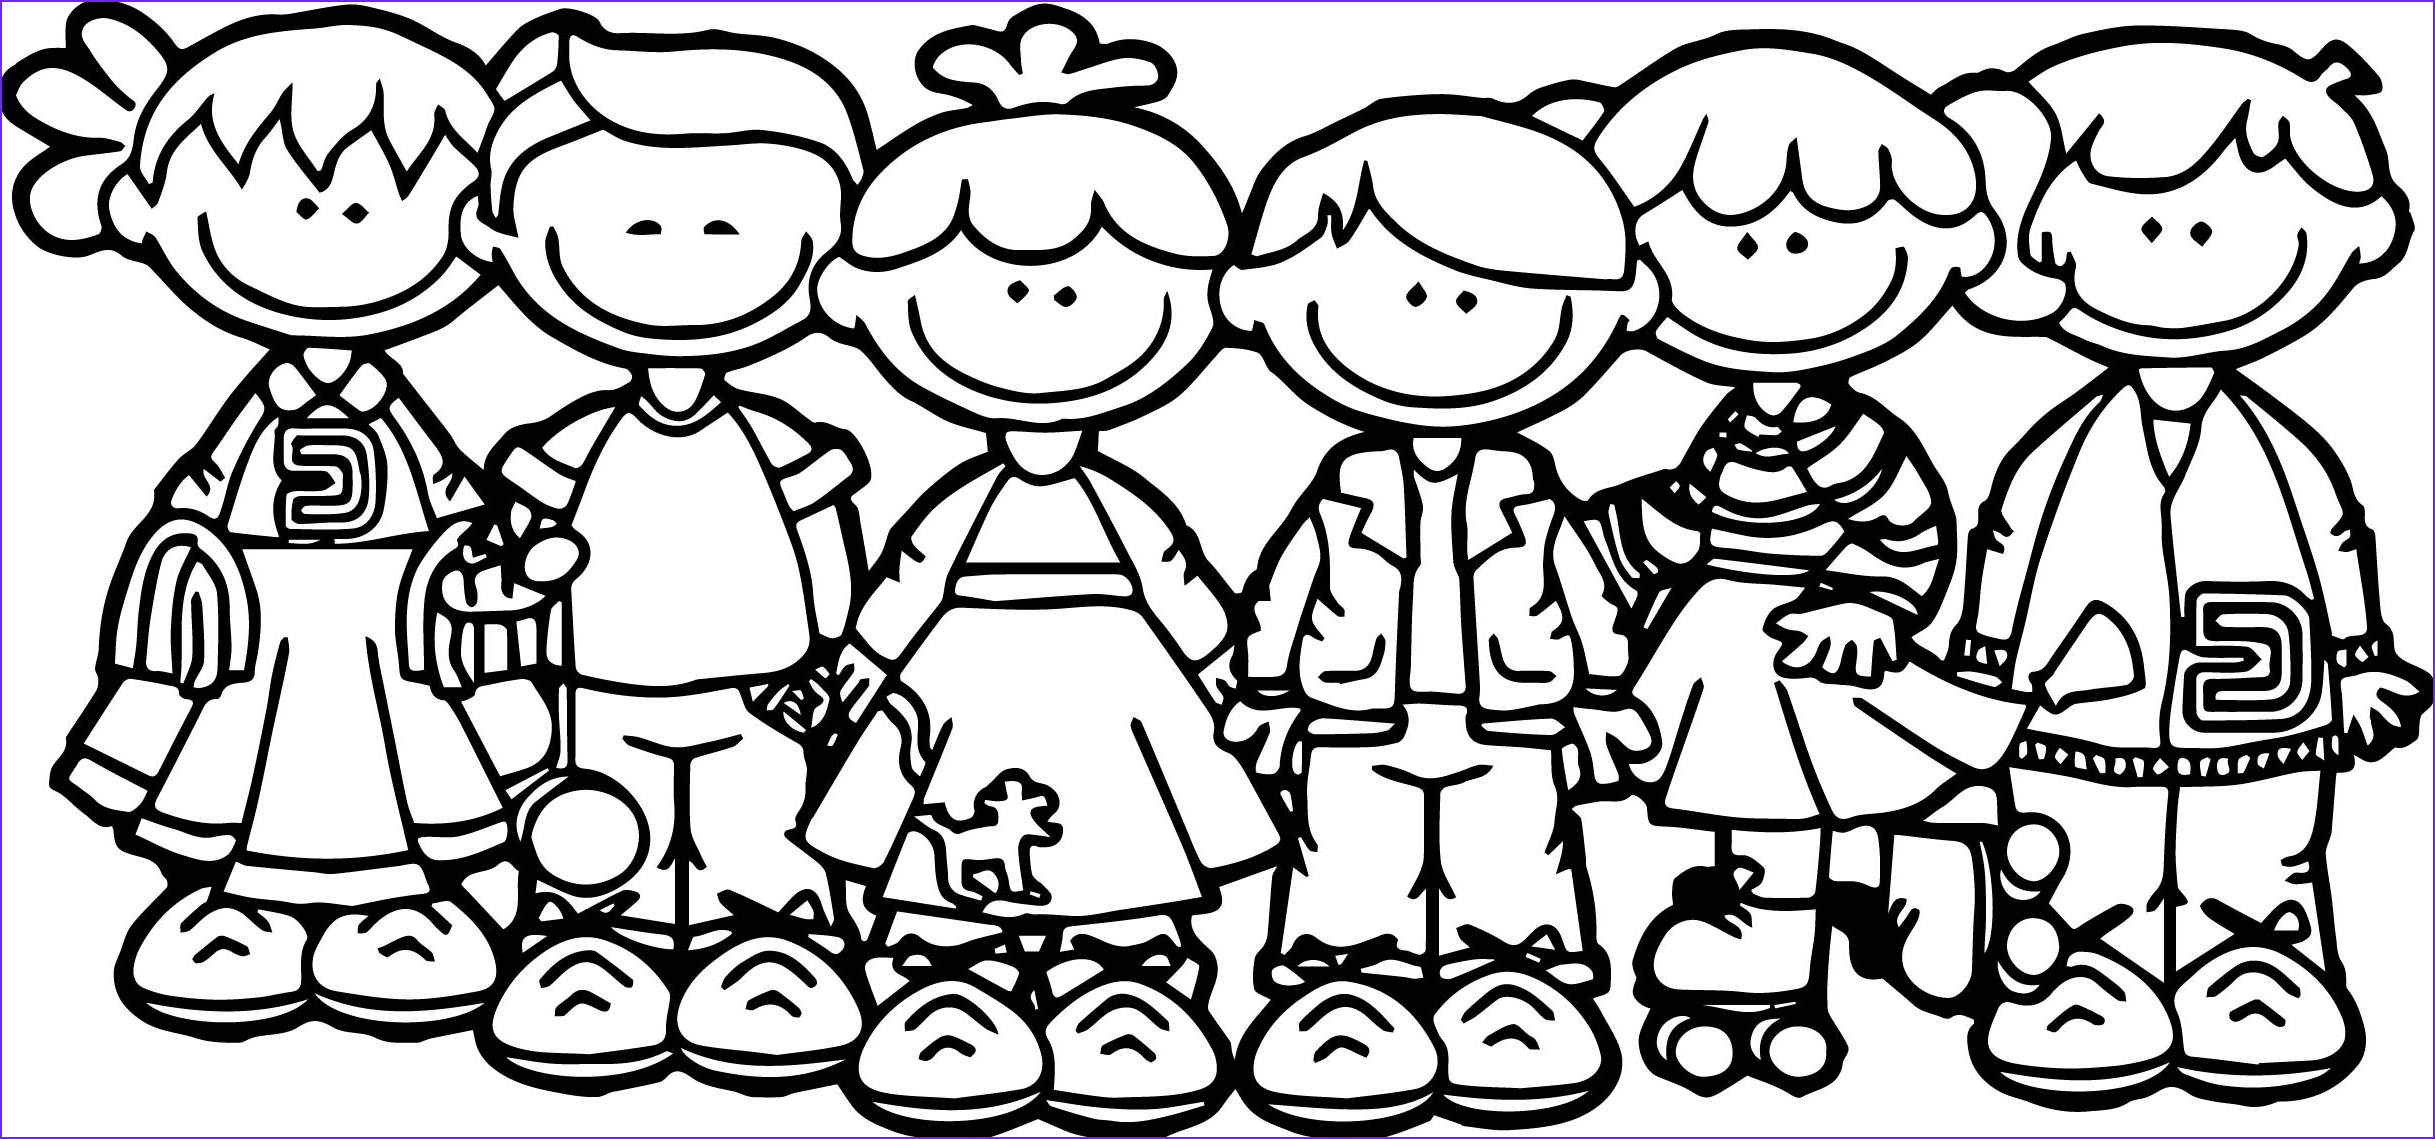 Schools Coloring Page Inspirational Photos 100 Days School Children Coloring Page